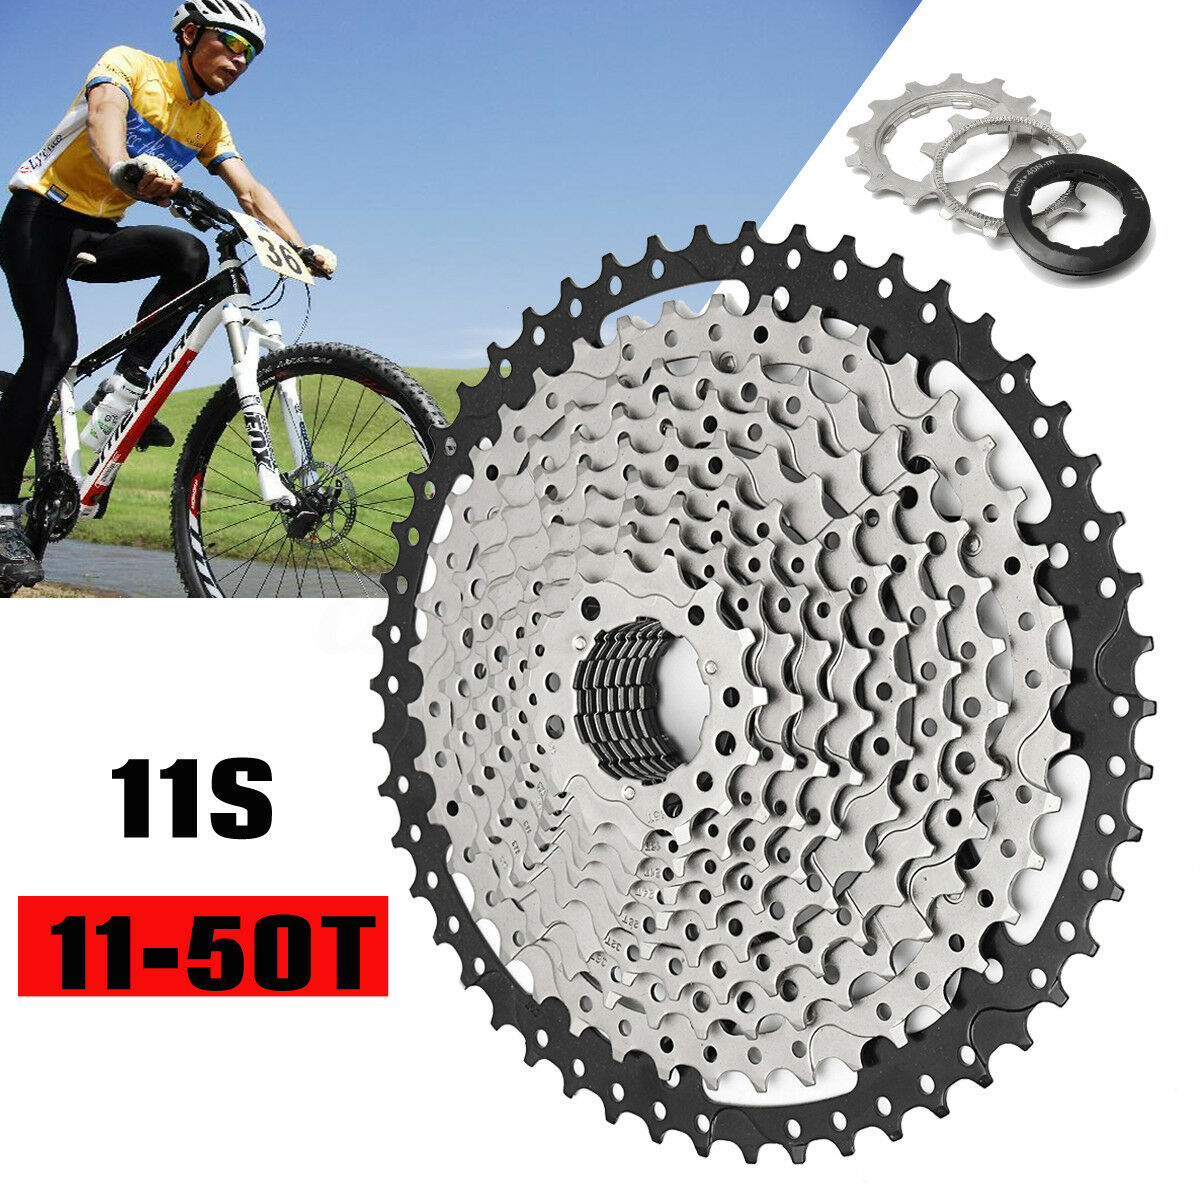 11-50T Mountain Cycling Freewheels 11 Speed Bicycle  Flywheel Bike Cassette Part  conveniente